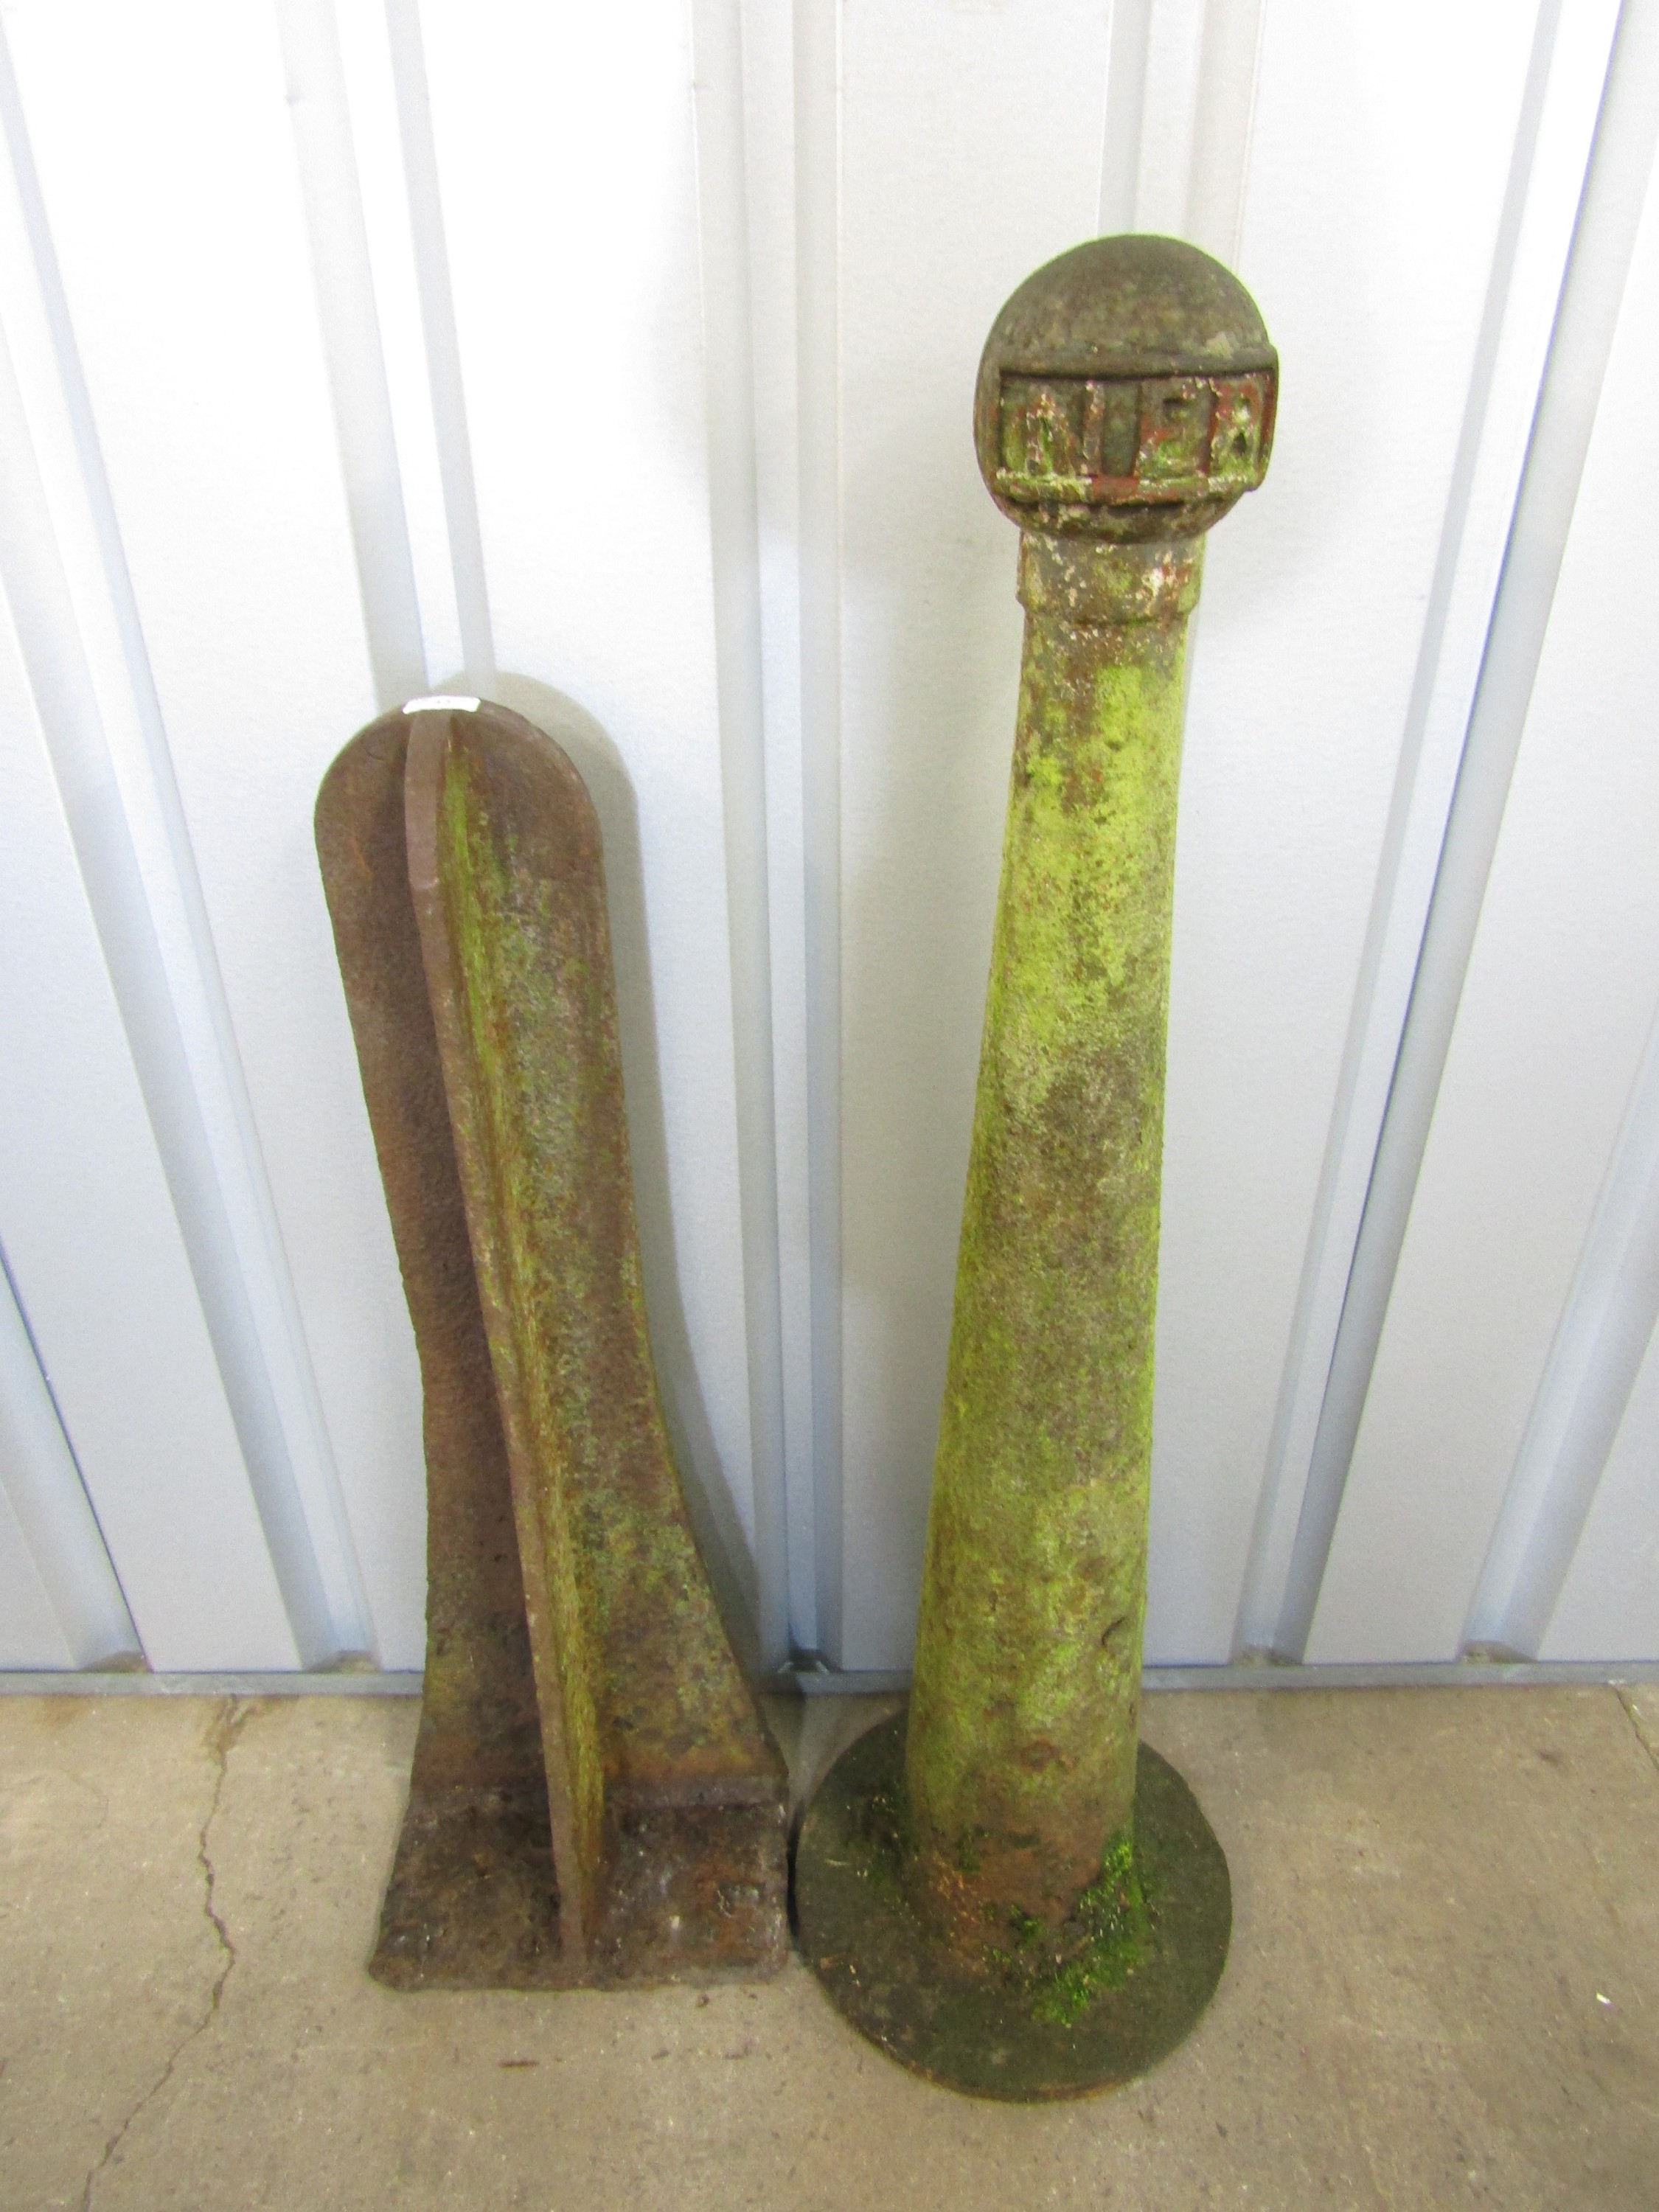 Lot 43 - [Railway Interest] A vintage NER railway boundary marker together with one other